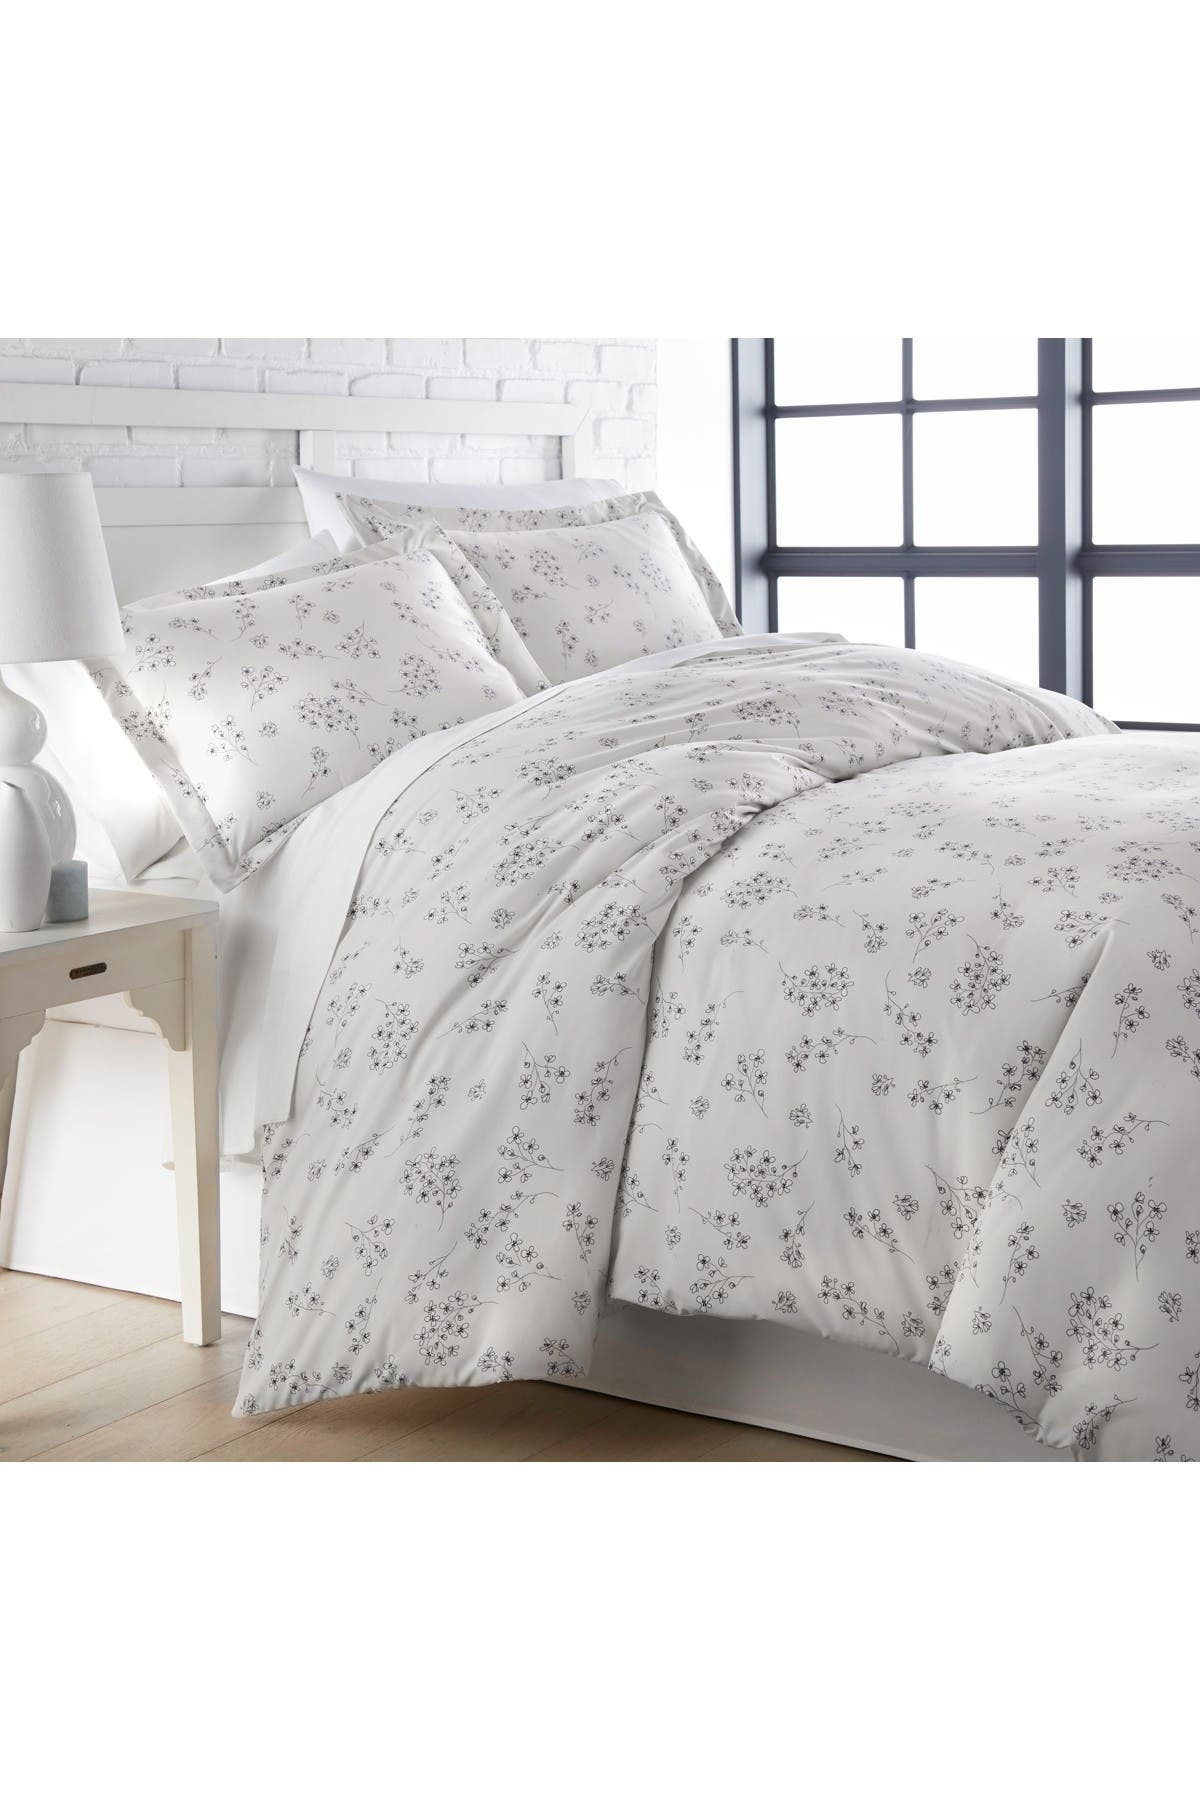 Image of SOUTHSHORE FINE LINENS Full/Queen Luxury Collection Premium Oversized Duvet Cover Set - Gray